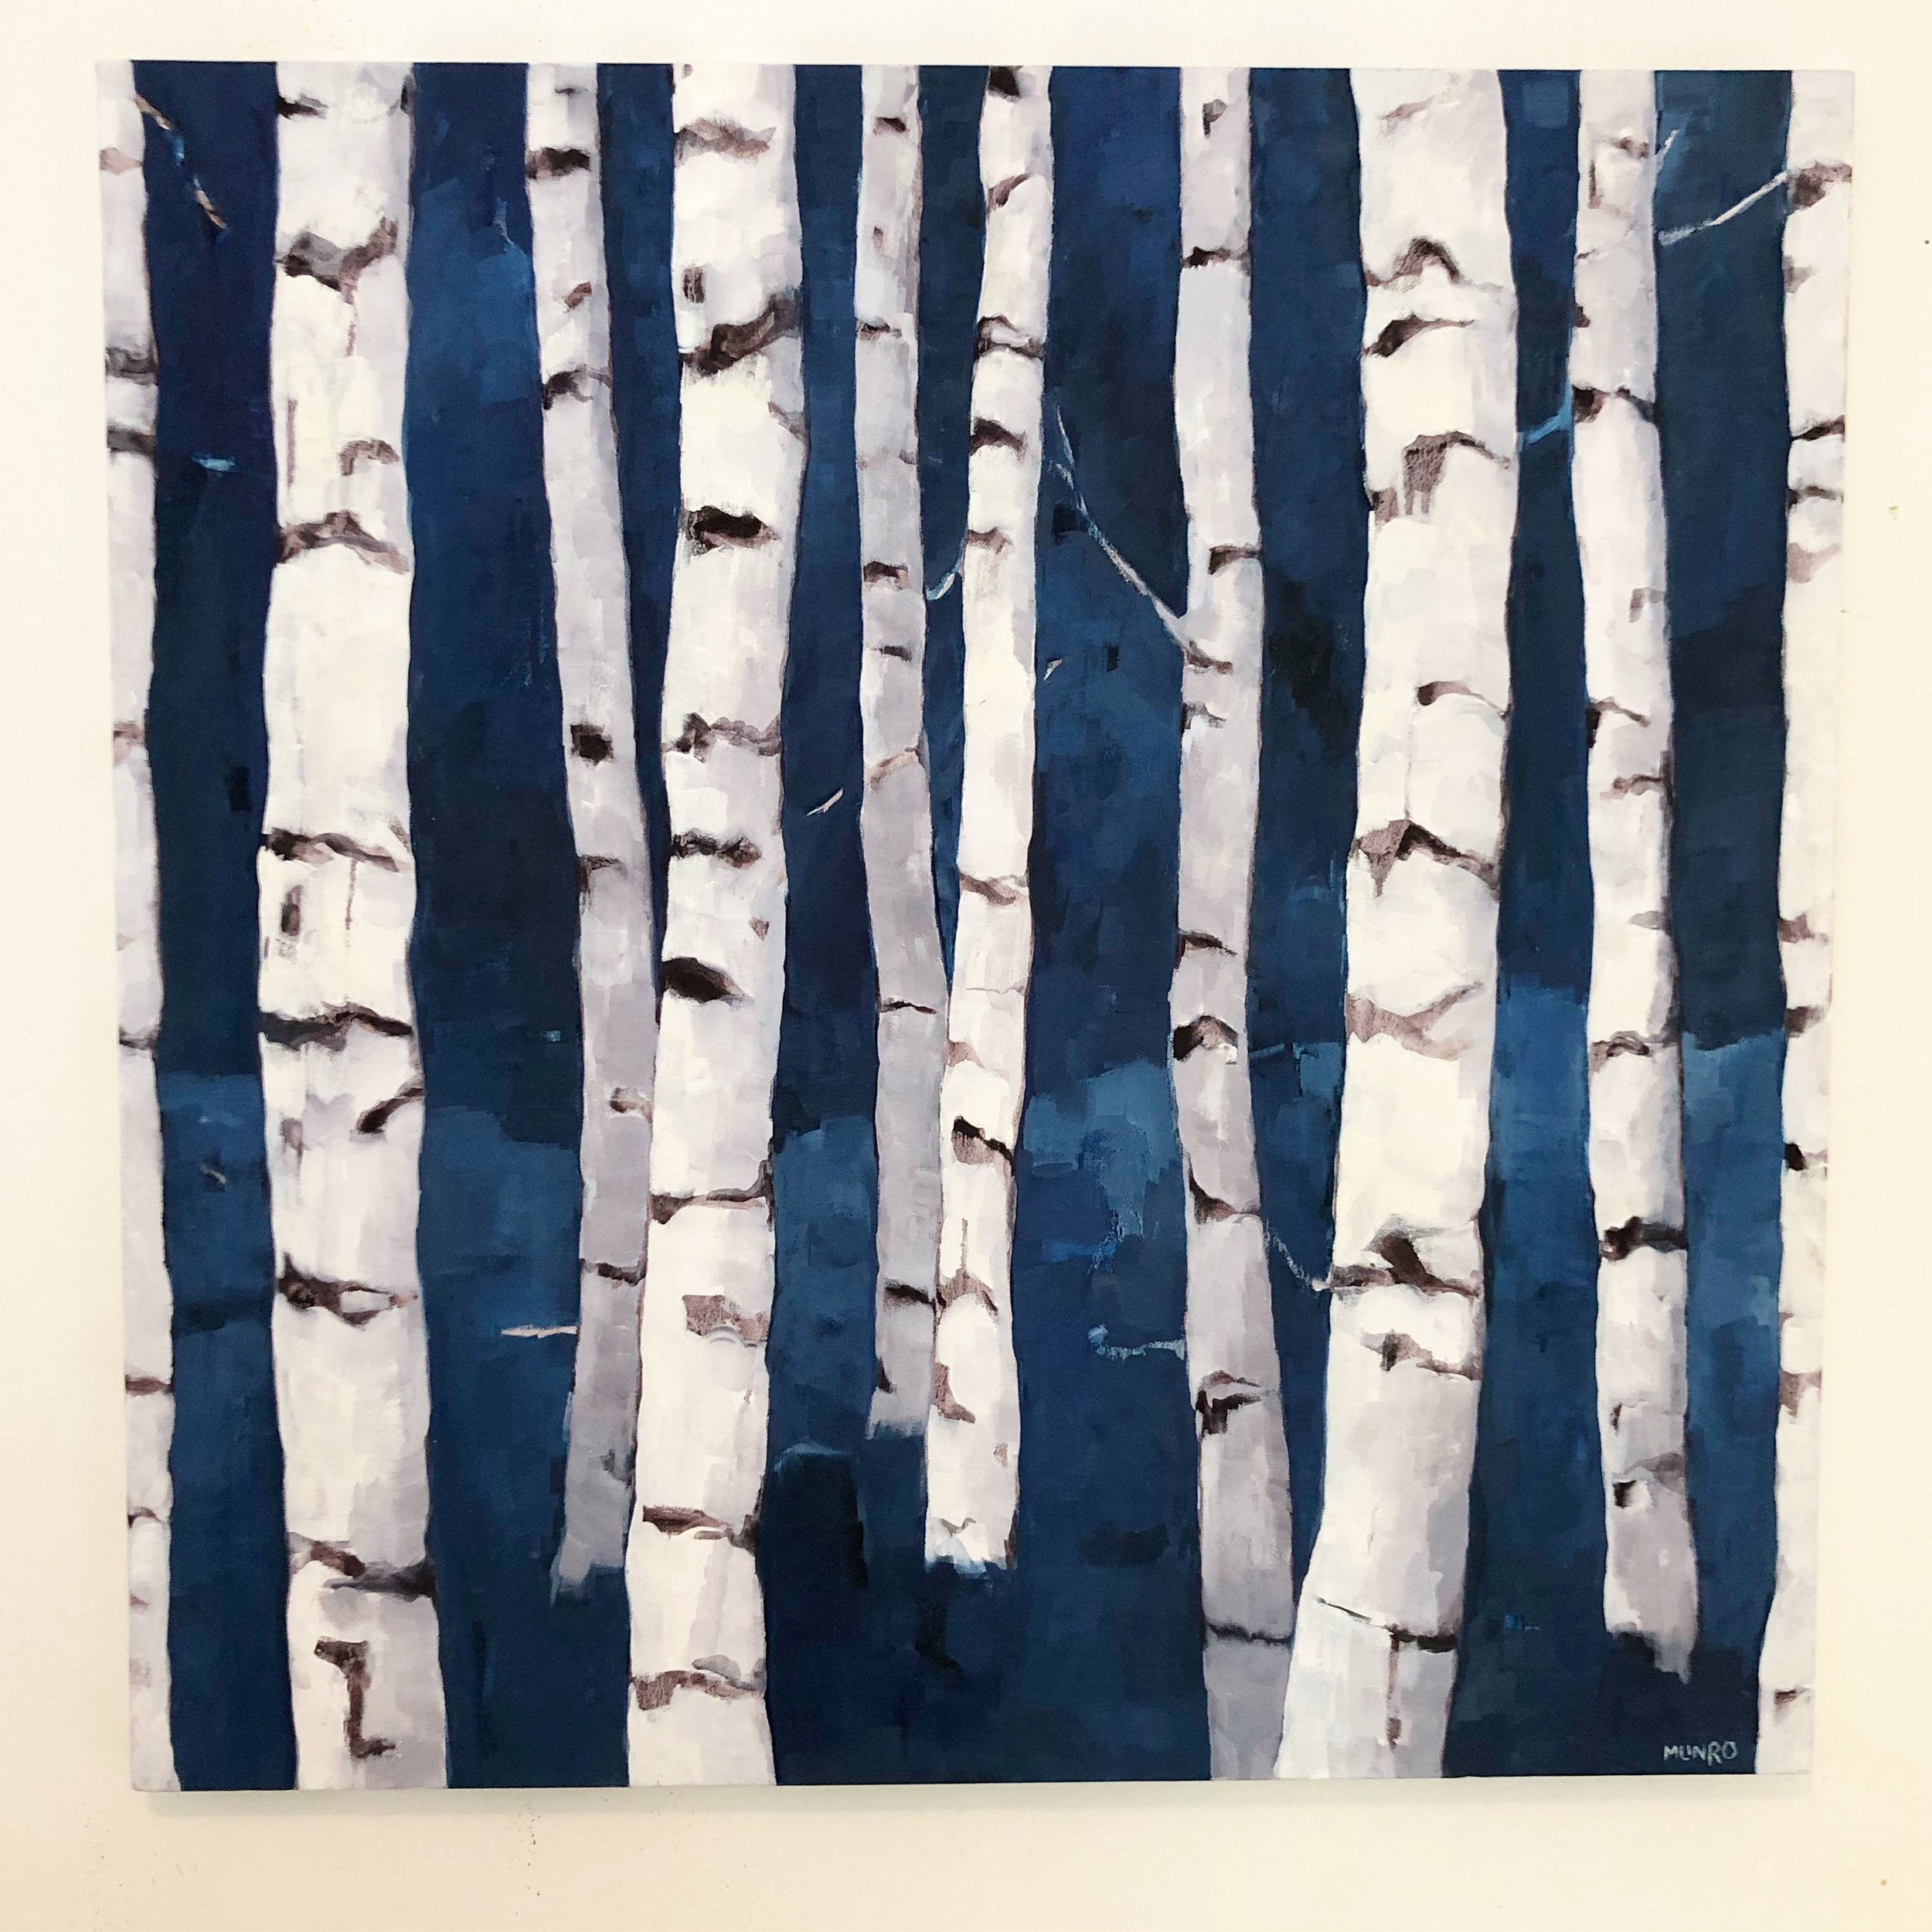 Birches in Indigo, oil on canvas, 36x36